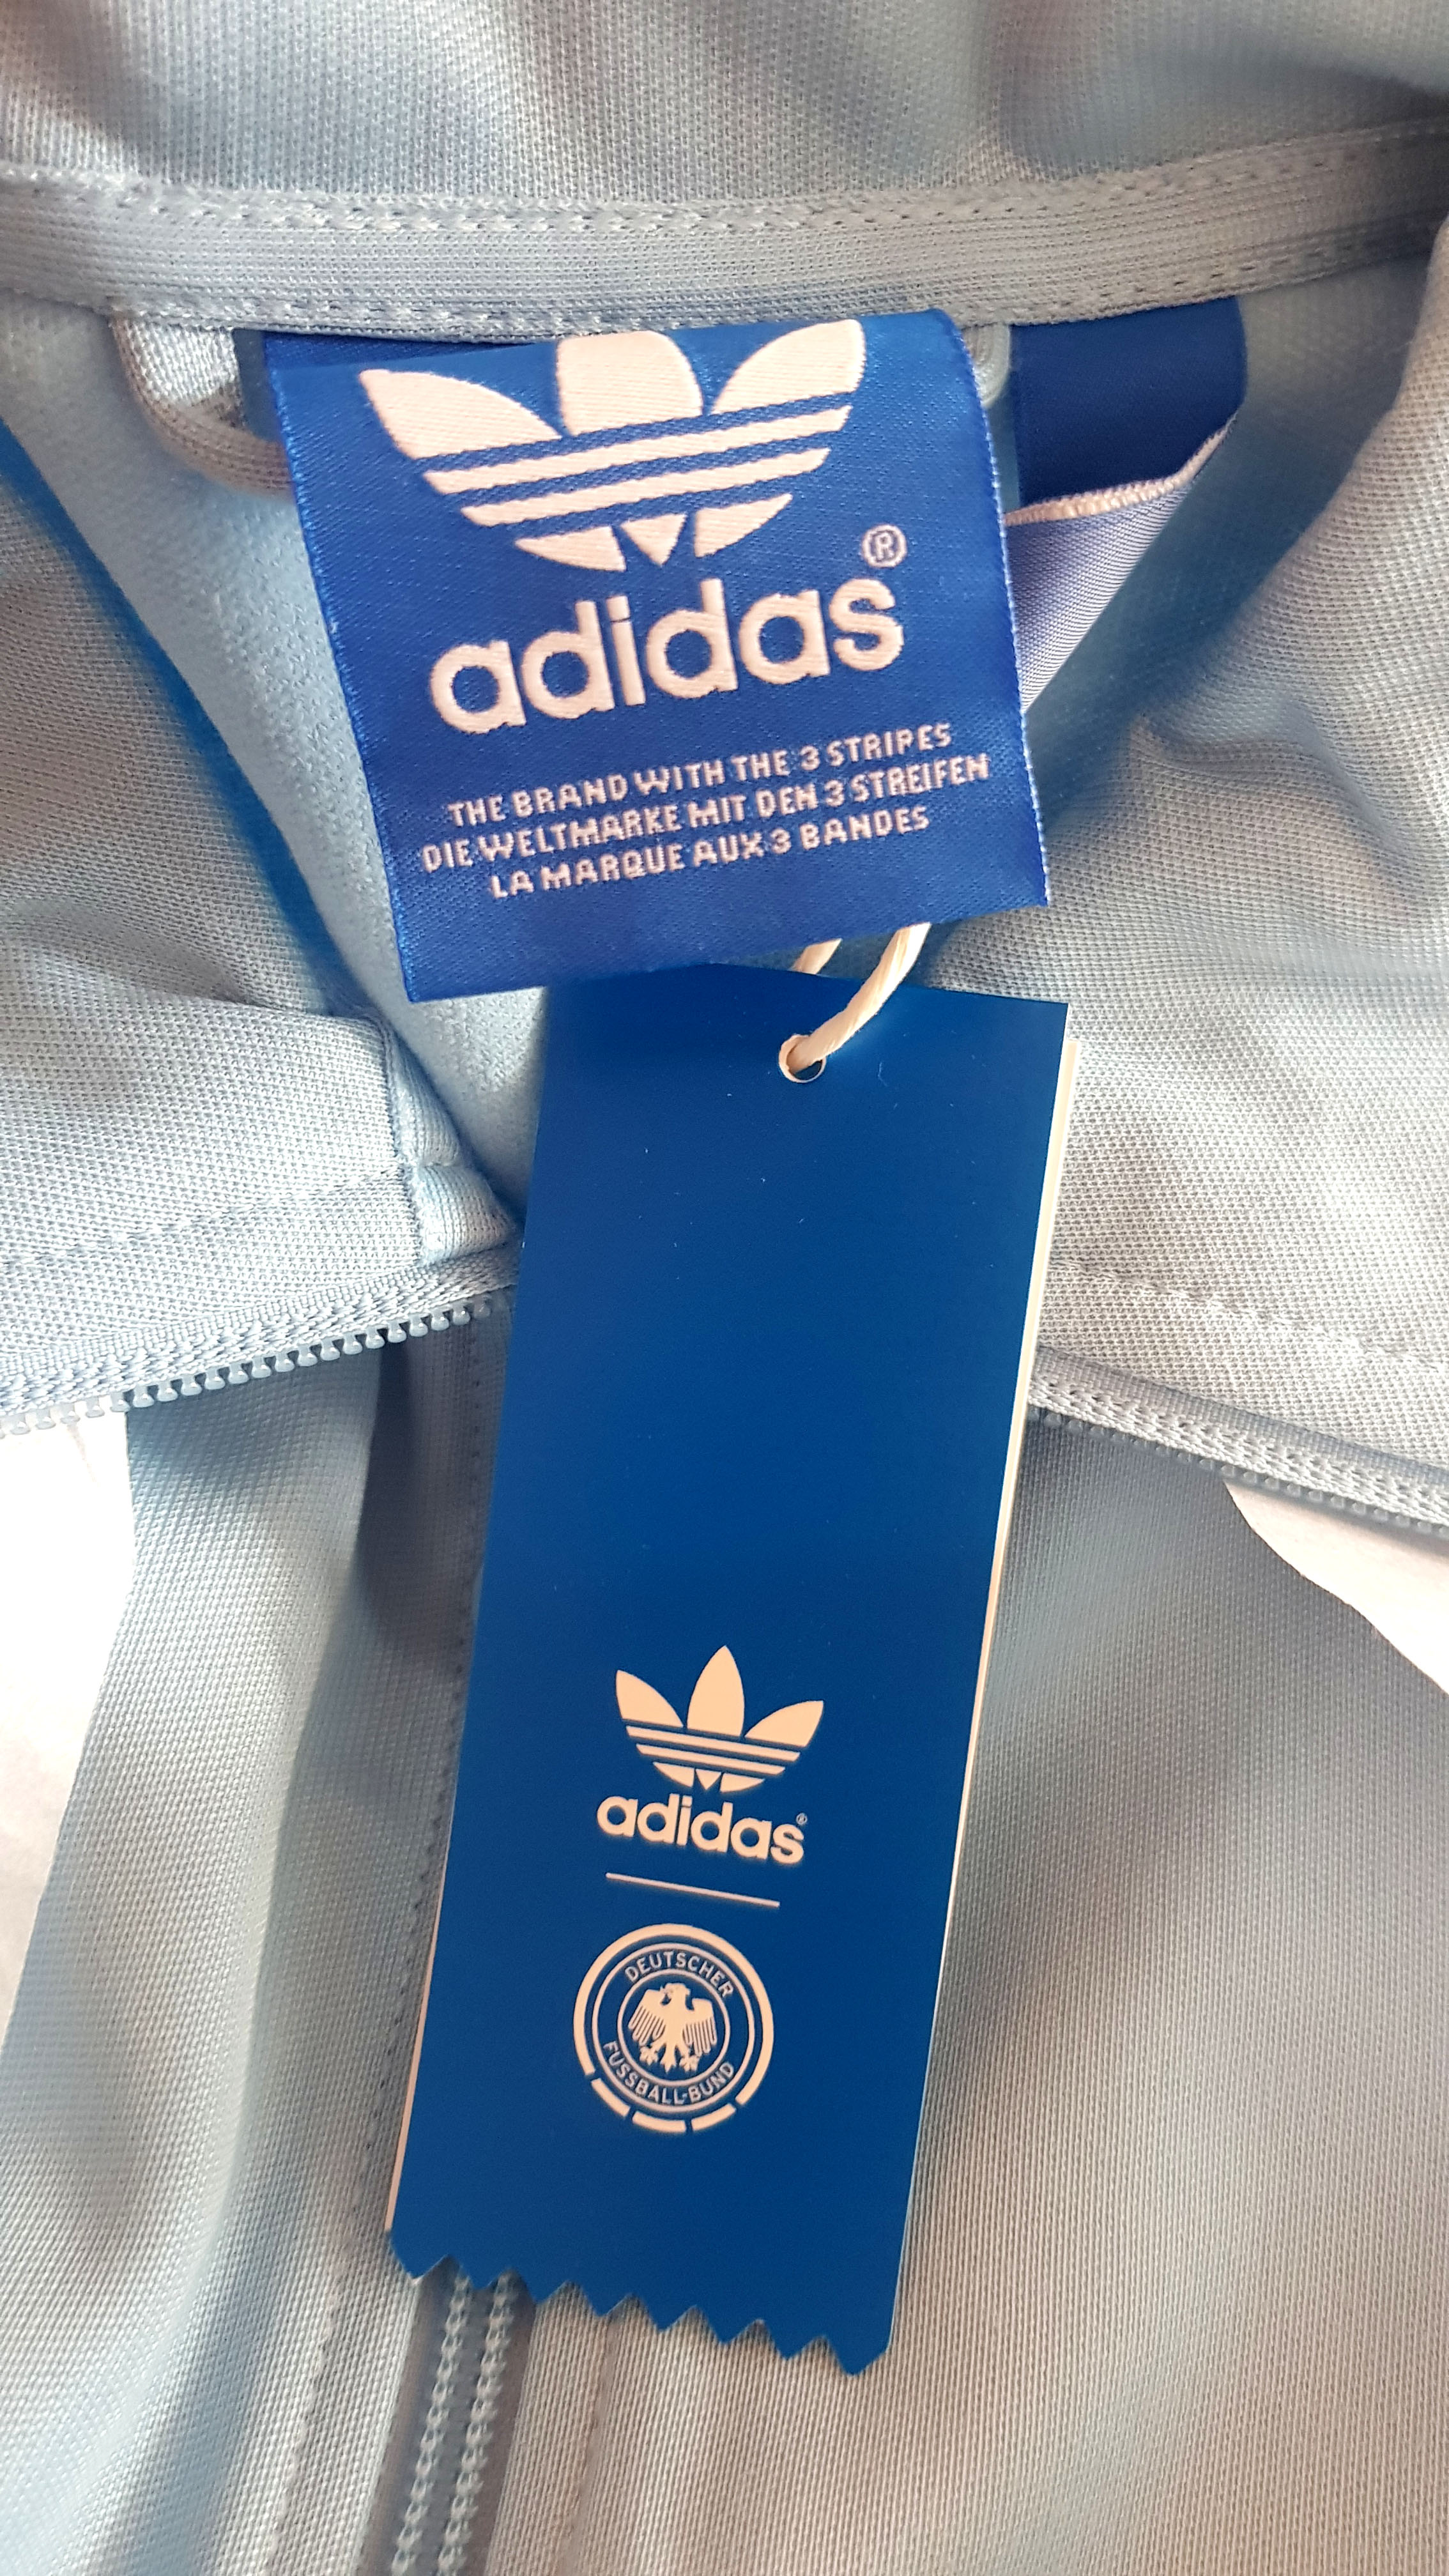 Adidas Deutschland Trainings Jacke WM 1974 Originals TT Blau